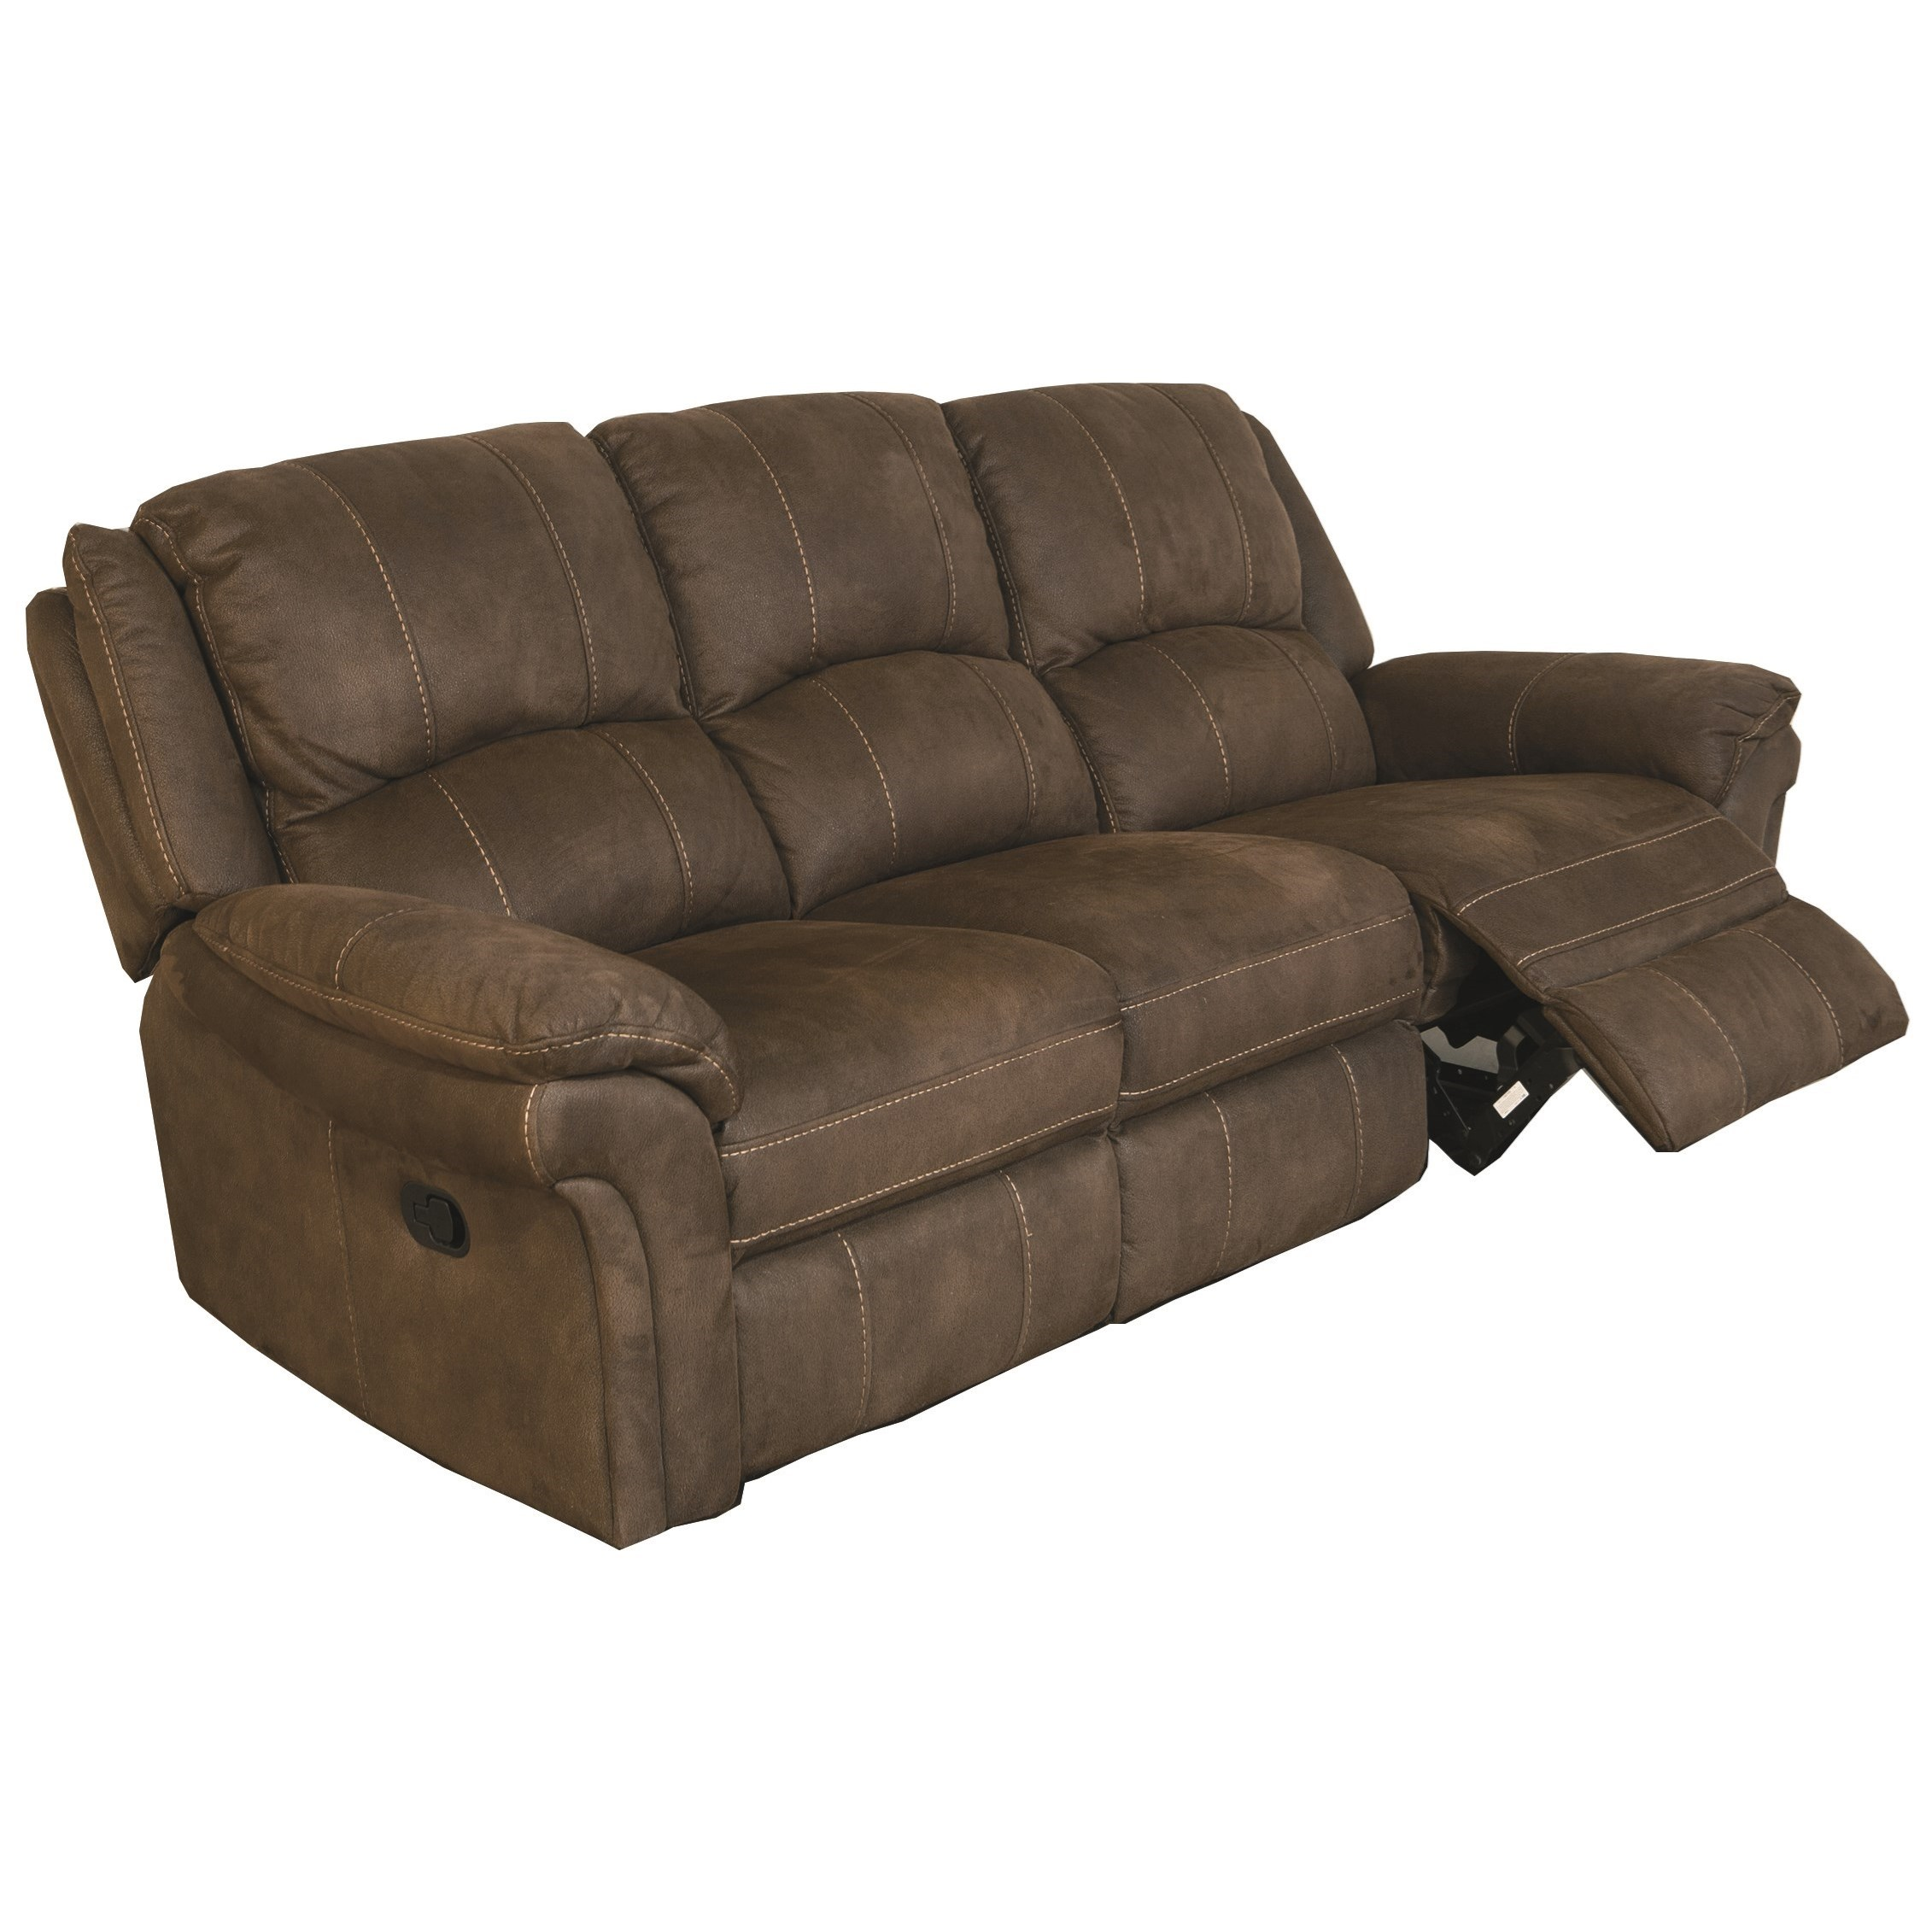 Boman Dual Reclining Sofa by Cheers Sofa at Lagniappe Home Store